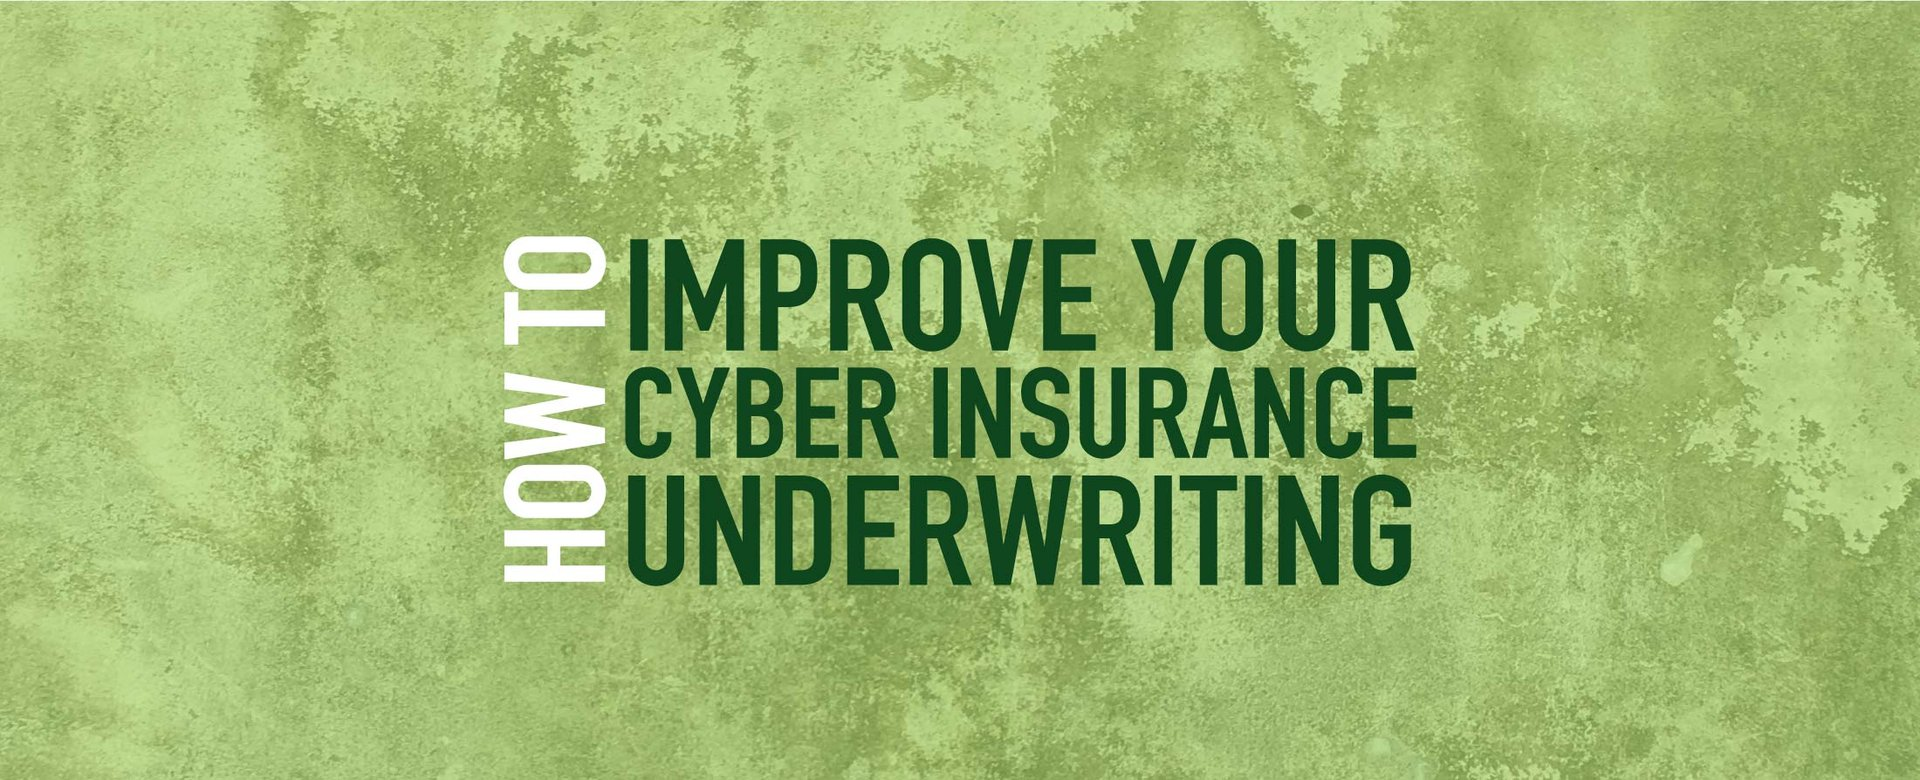 How To Improve Your Cyber Insurance Underwriting